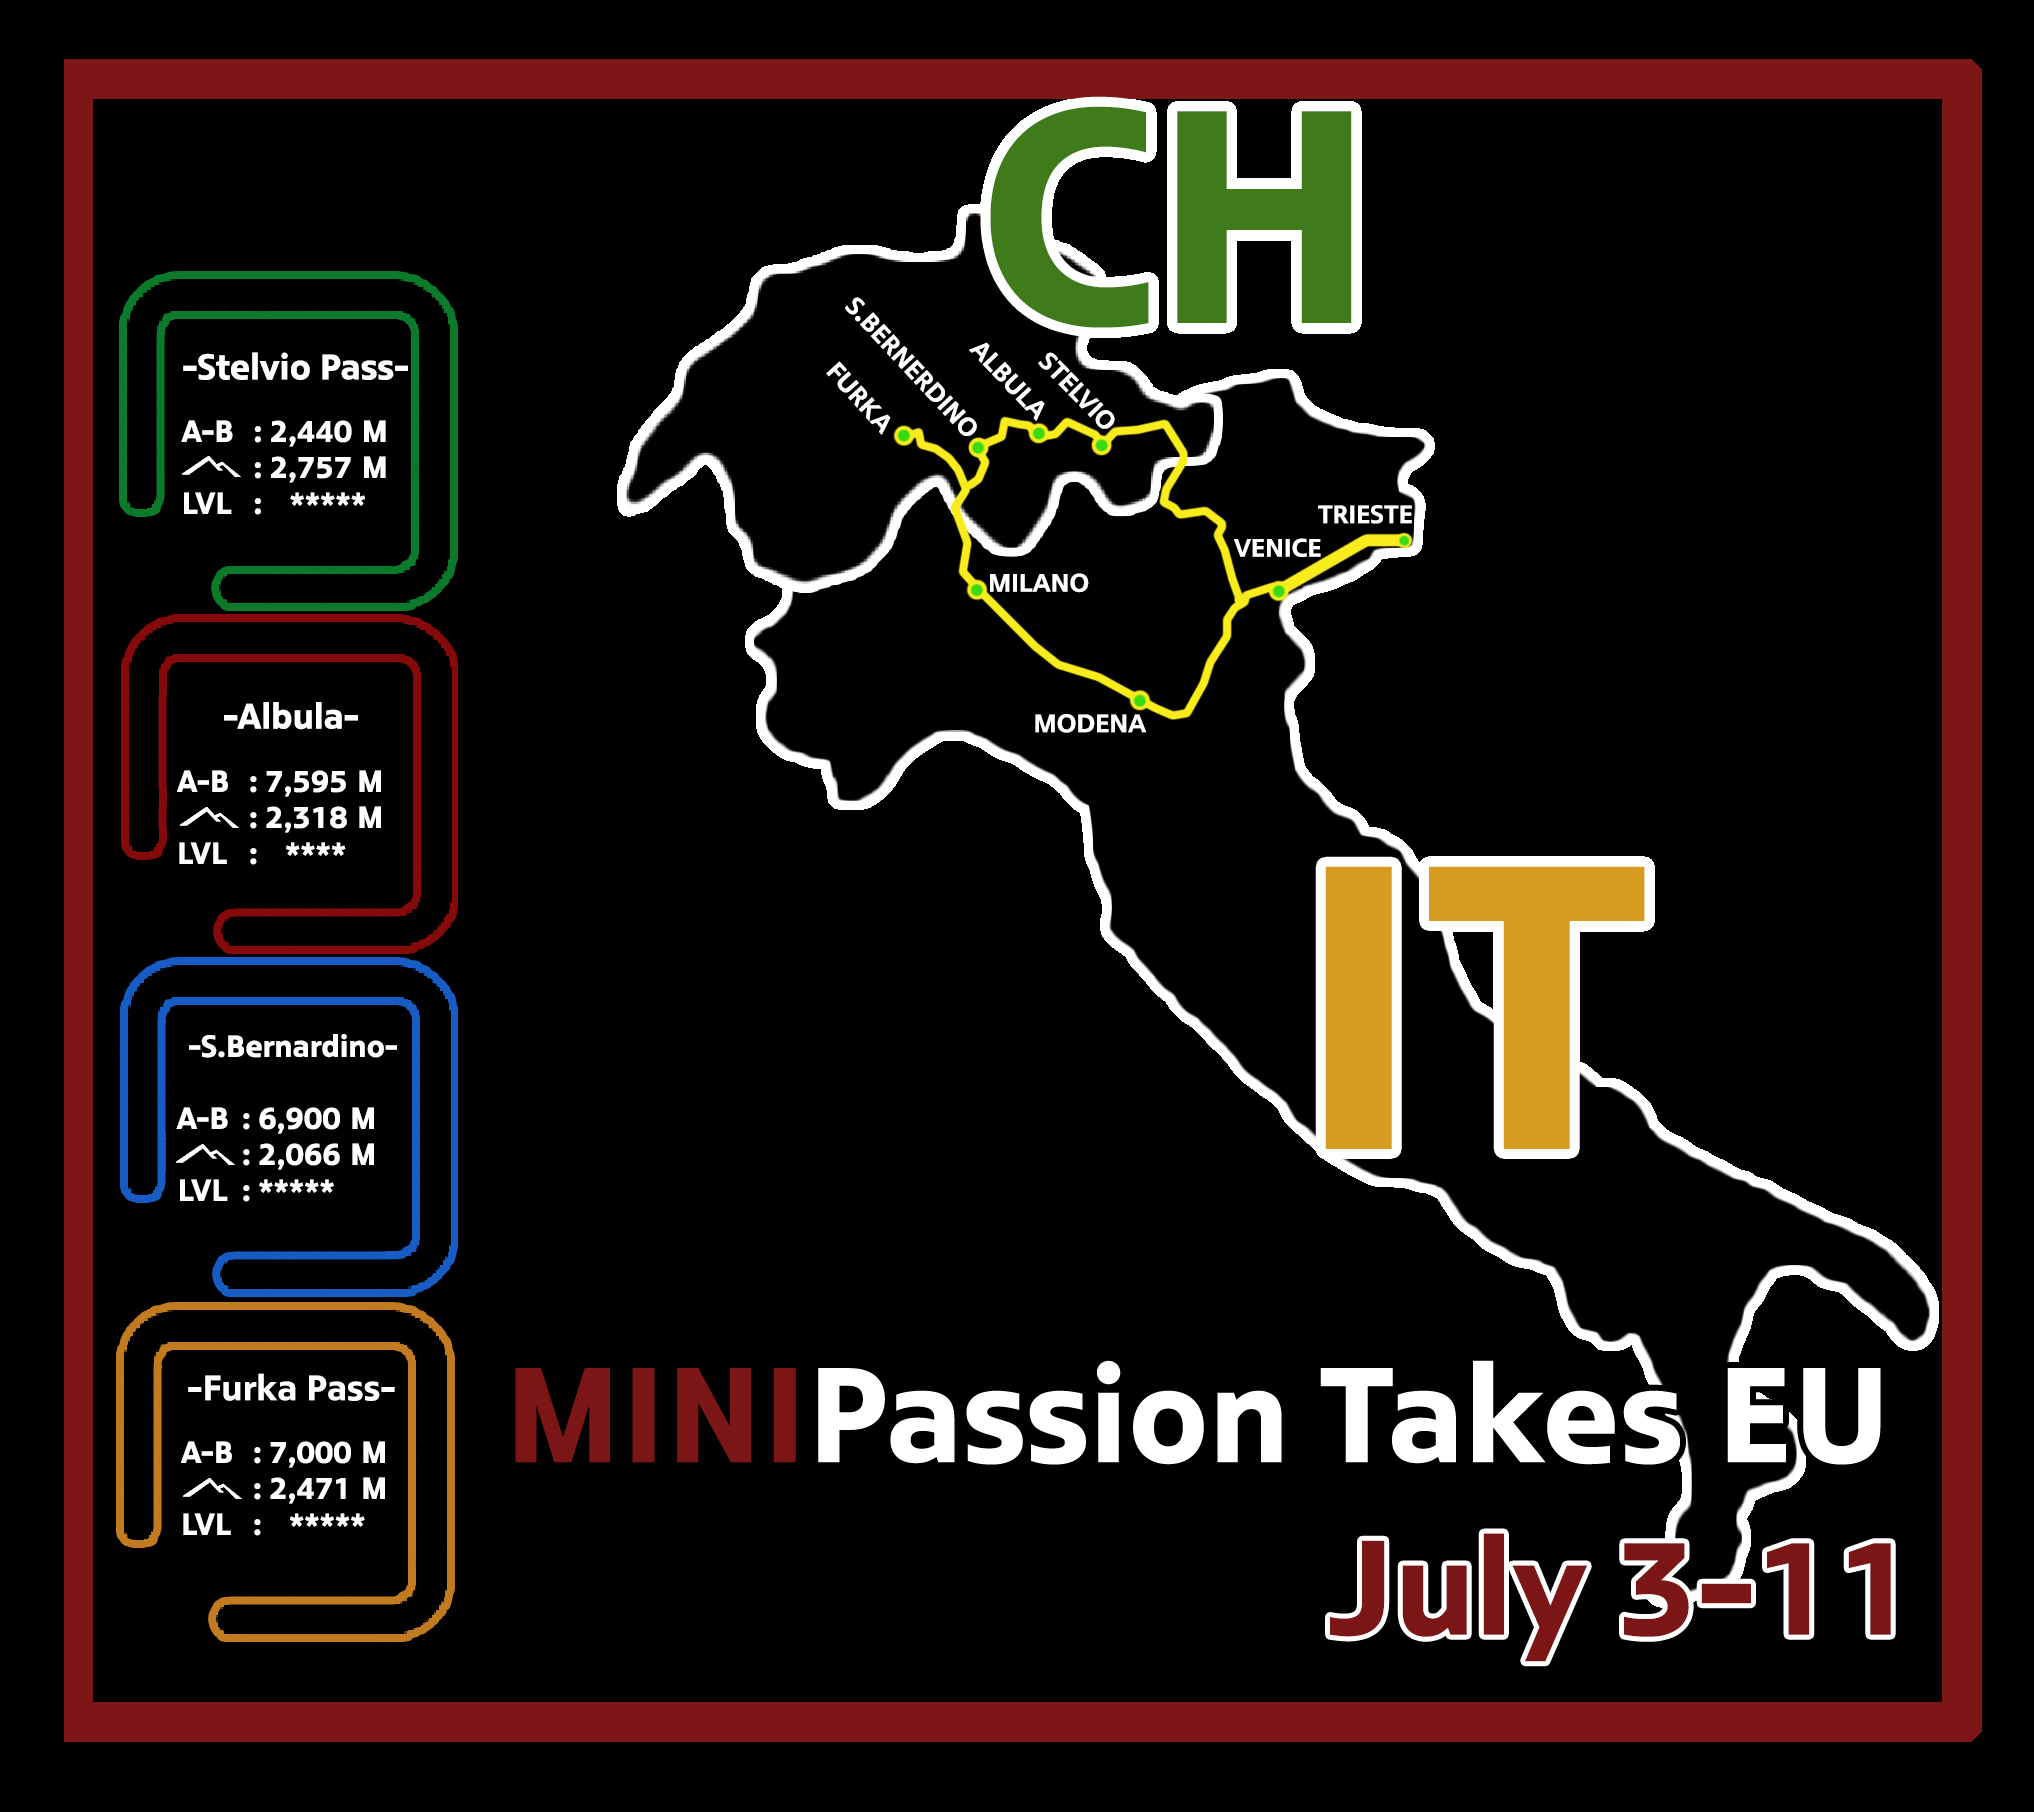 MINIPassion Takes EU Vol2